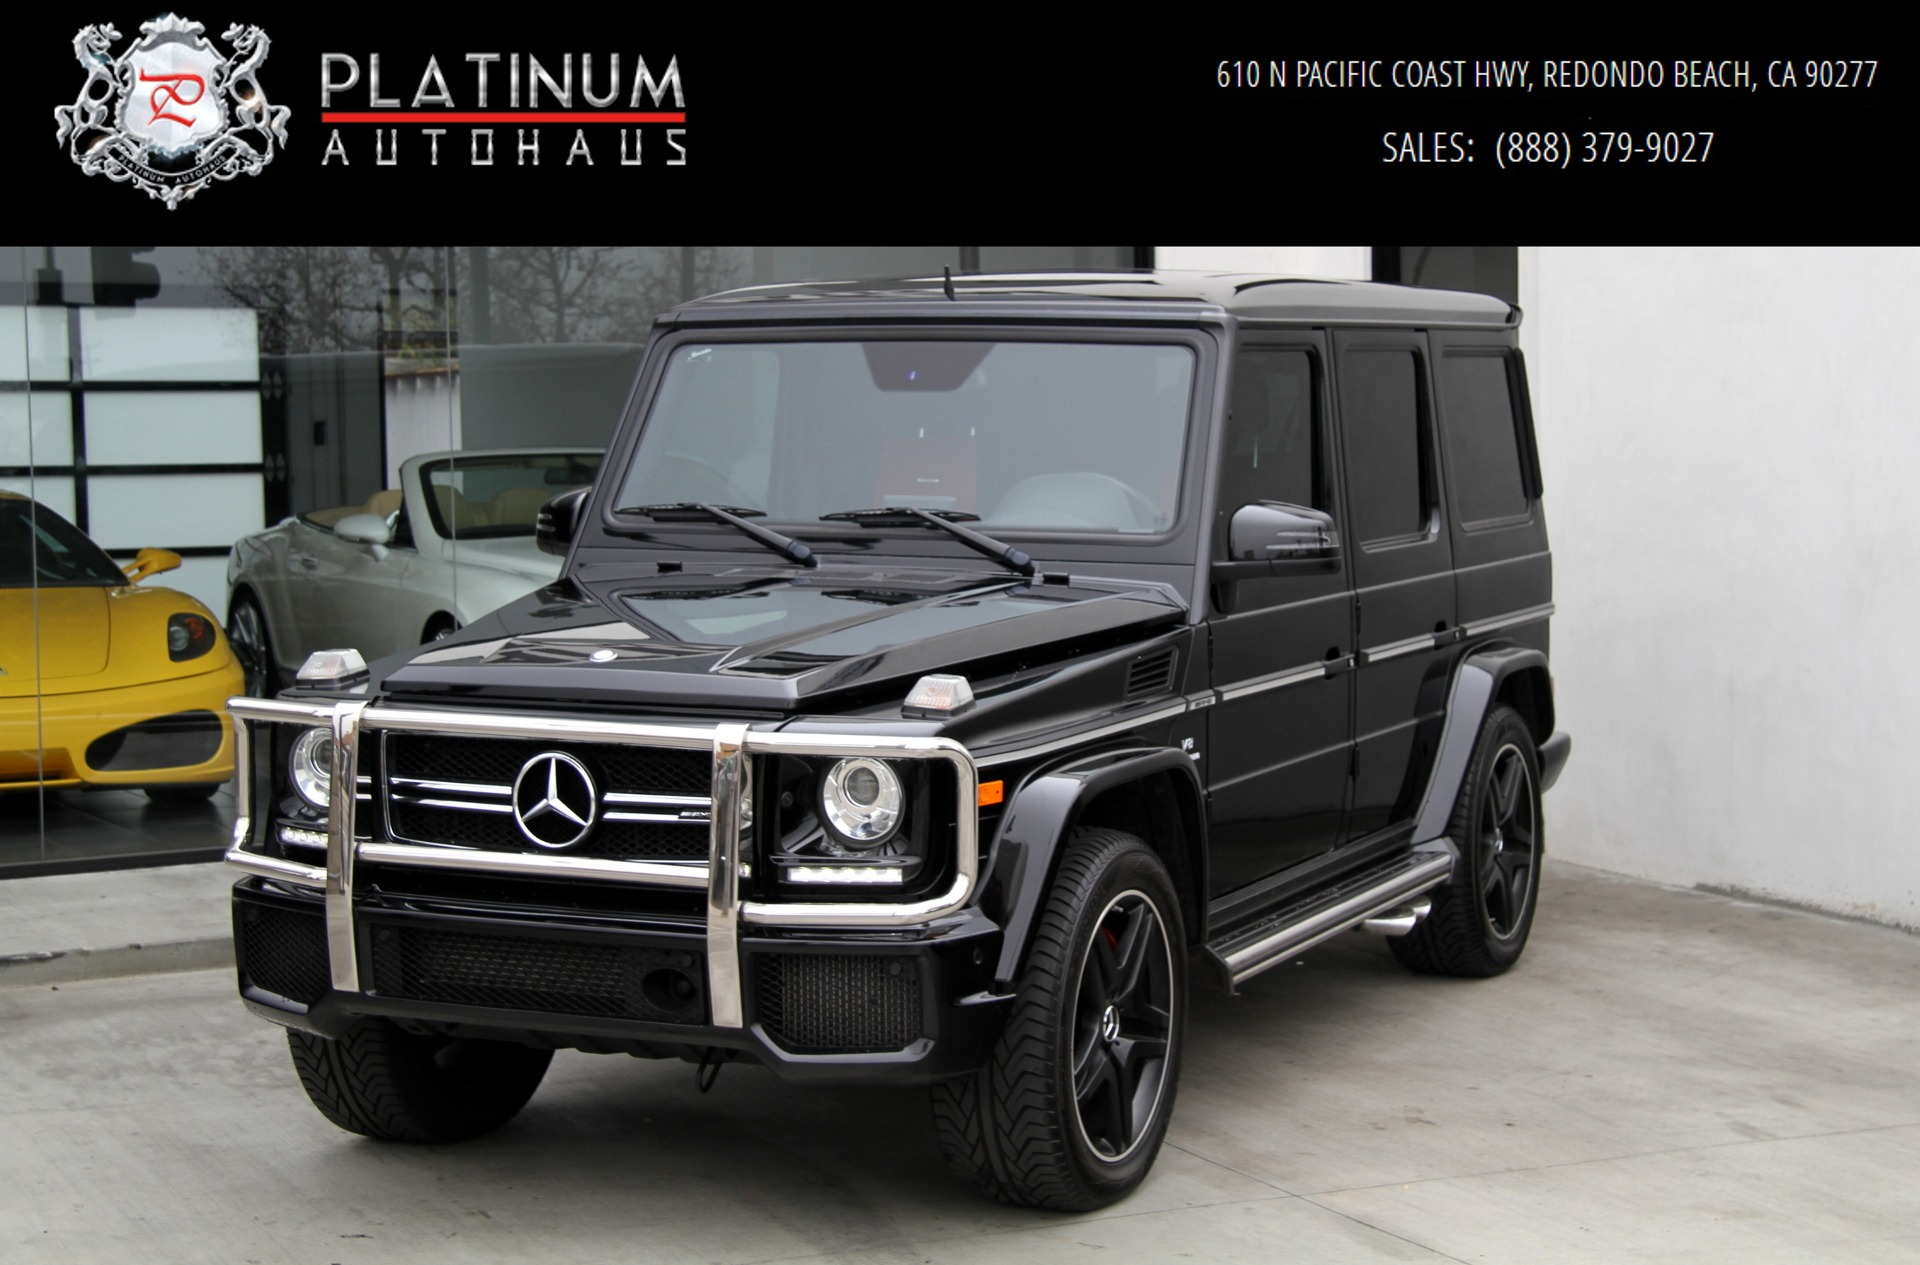 Mercedes Garage Near Me 2015 Mercedes Benz G63 Amg 4matic Diamond Stitched Seats G 63